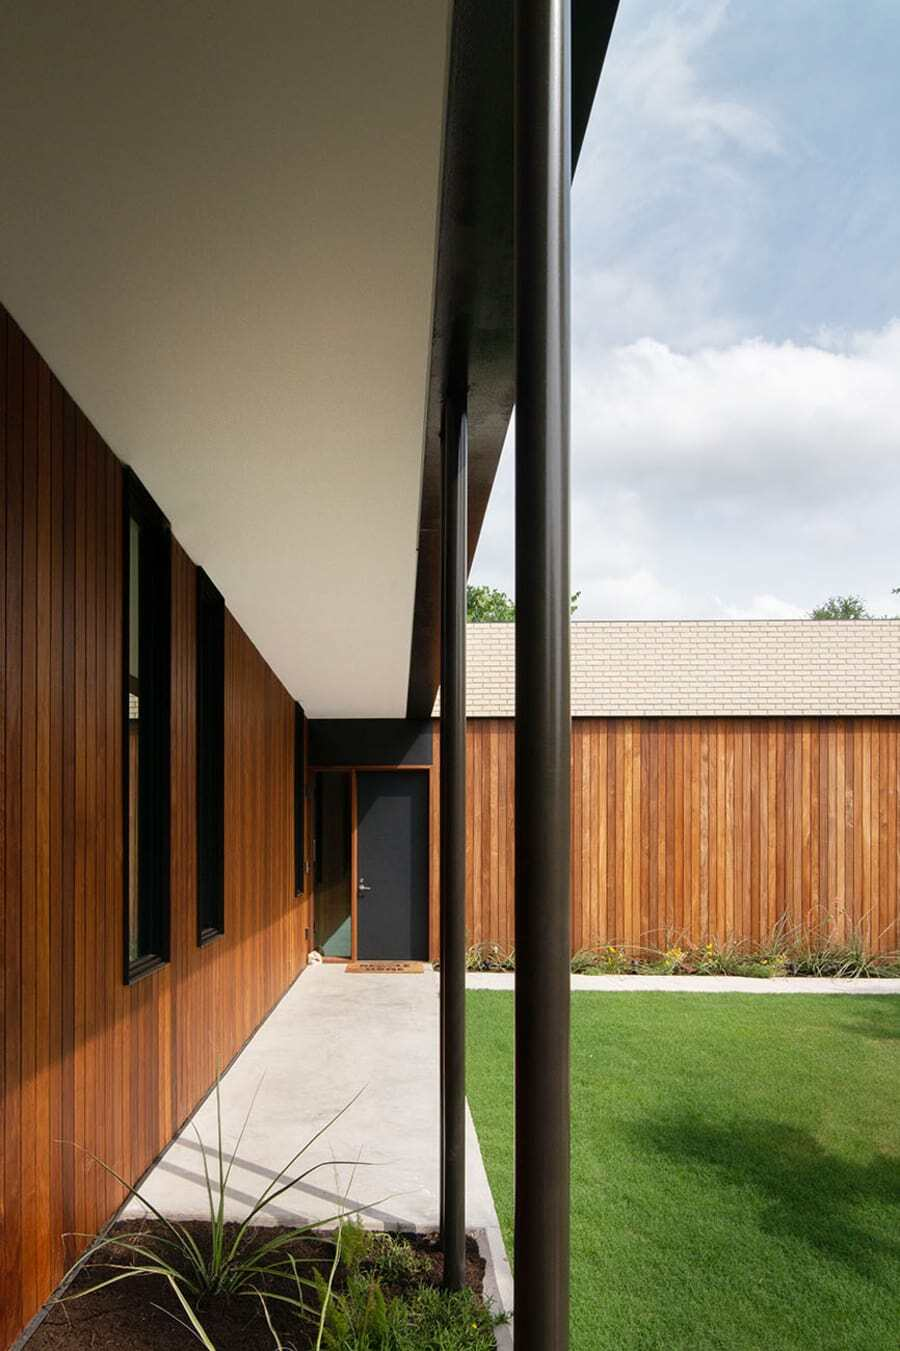 Barton Hills Brickhouse by Baldridge Architects